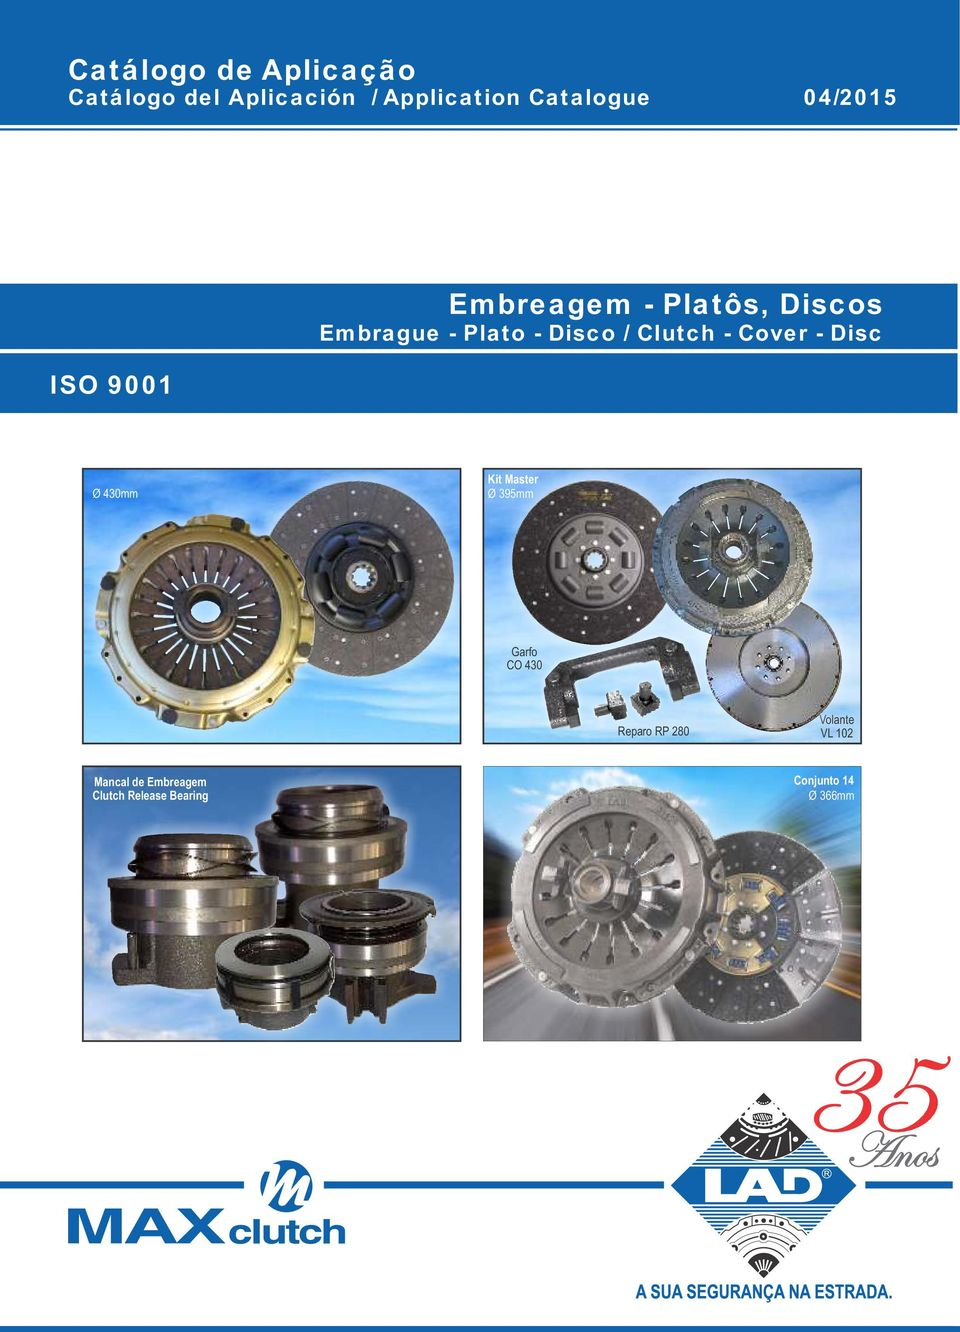 Cover - Disc ISO 9001 Ø 430mm Kit Master Ø 395mm Garfo CO 430 Reparo RP 280